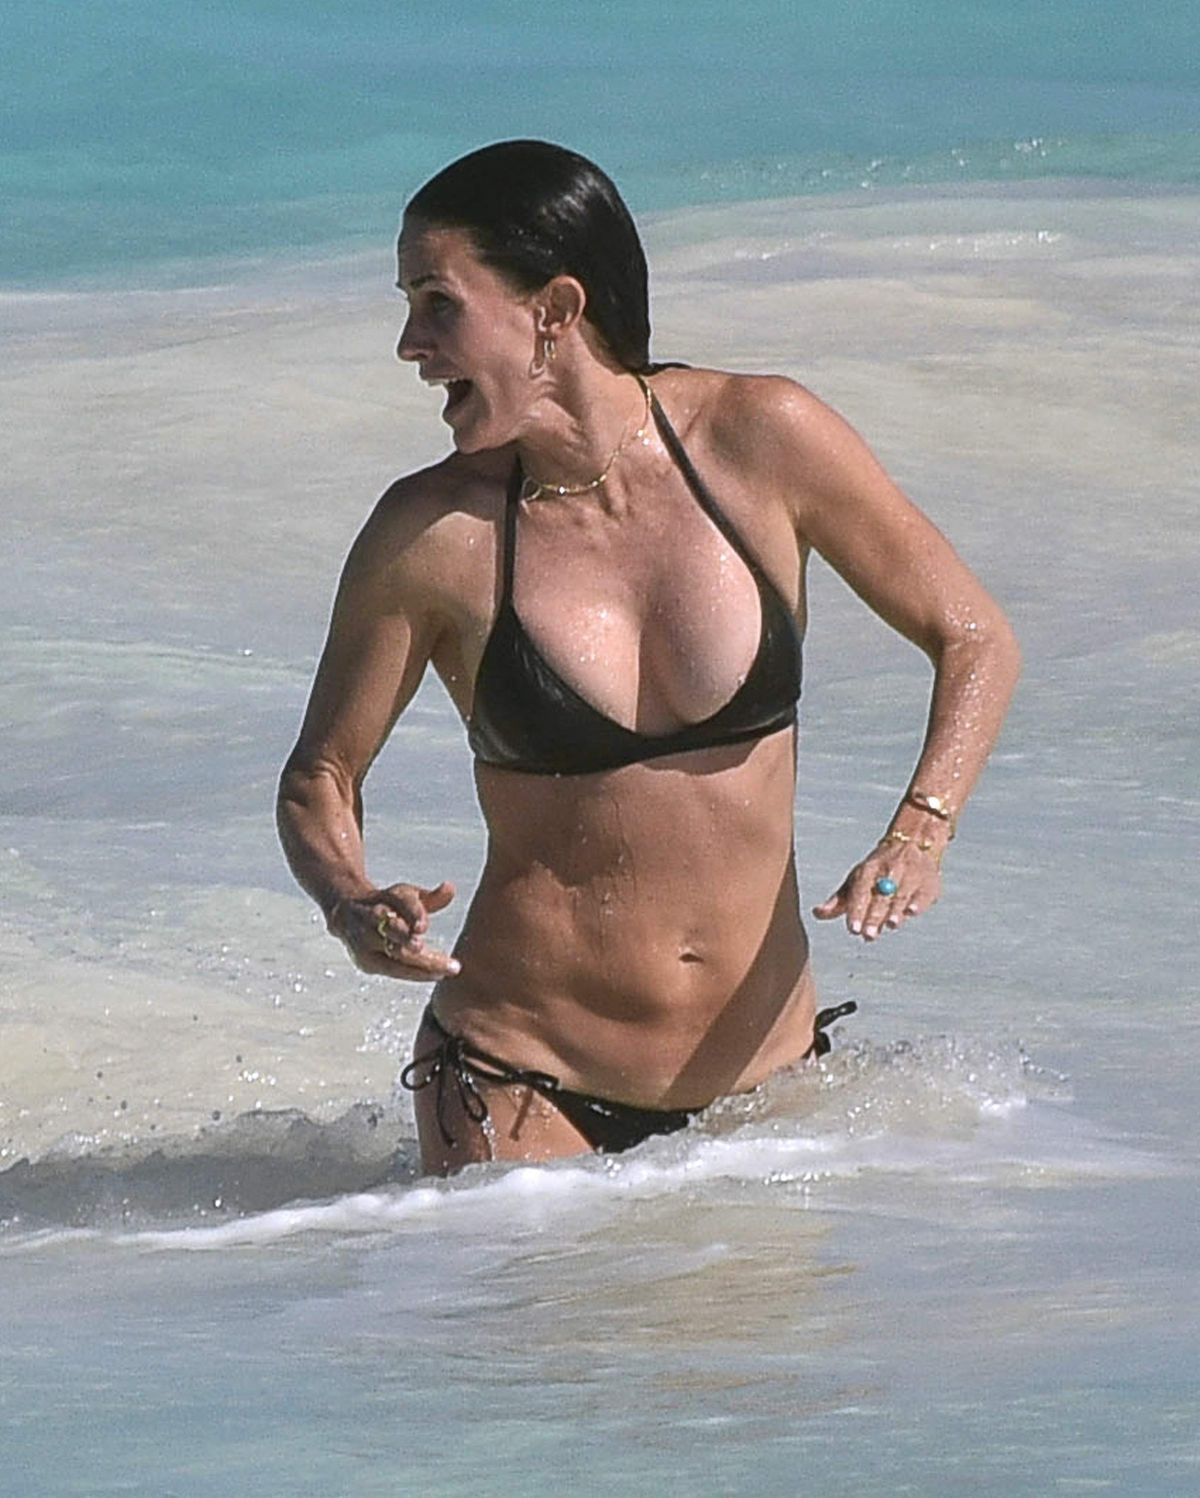 courteney cox hot bikini pic2